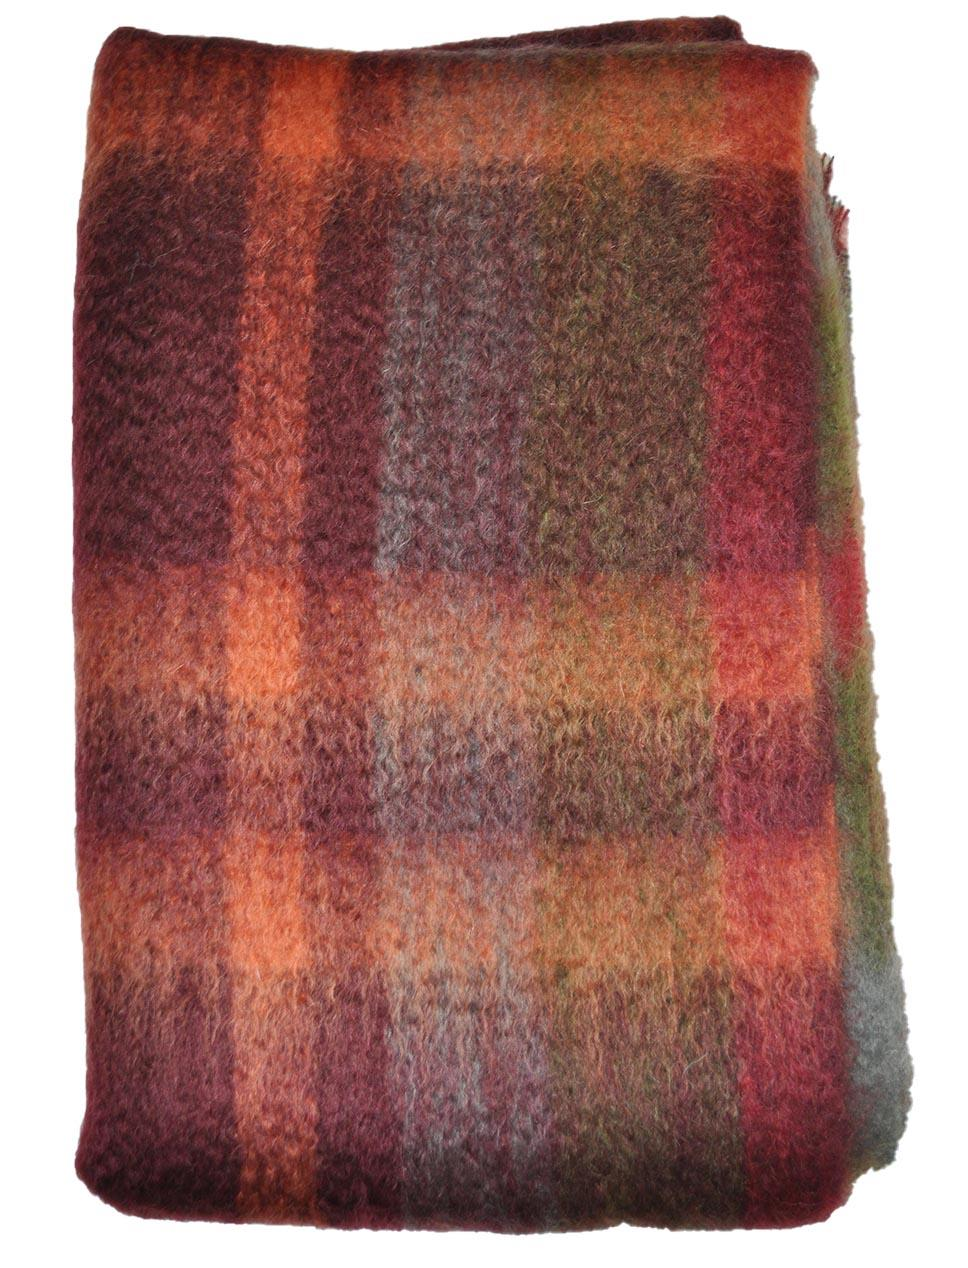 Green Grove Weavers | Mohair Throw - Russet